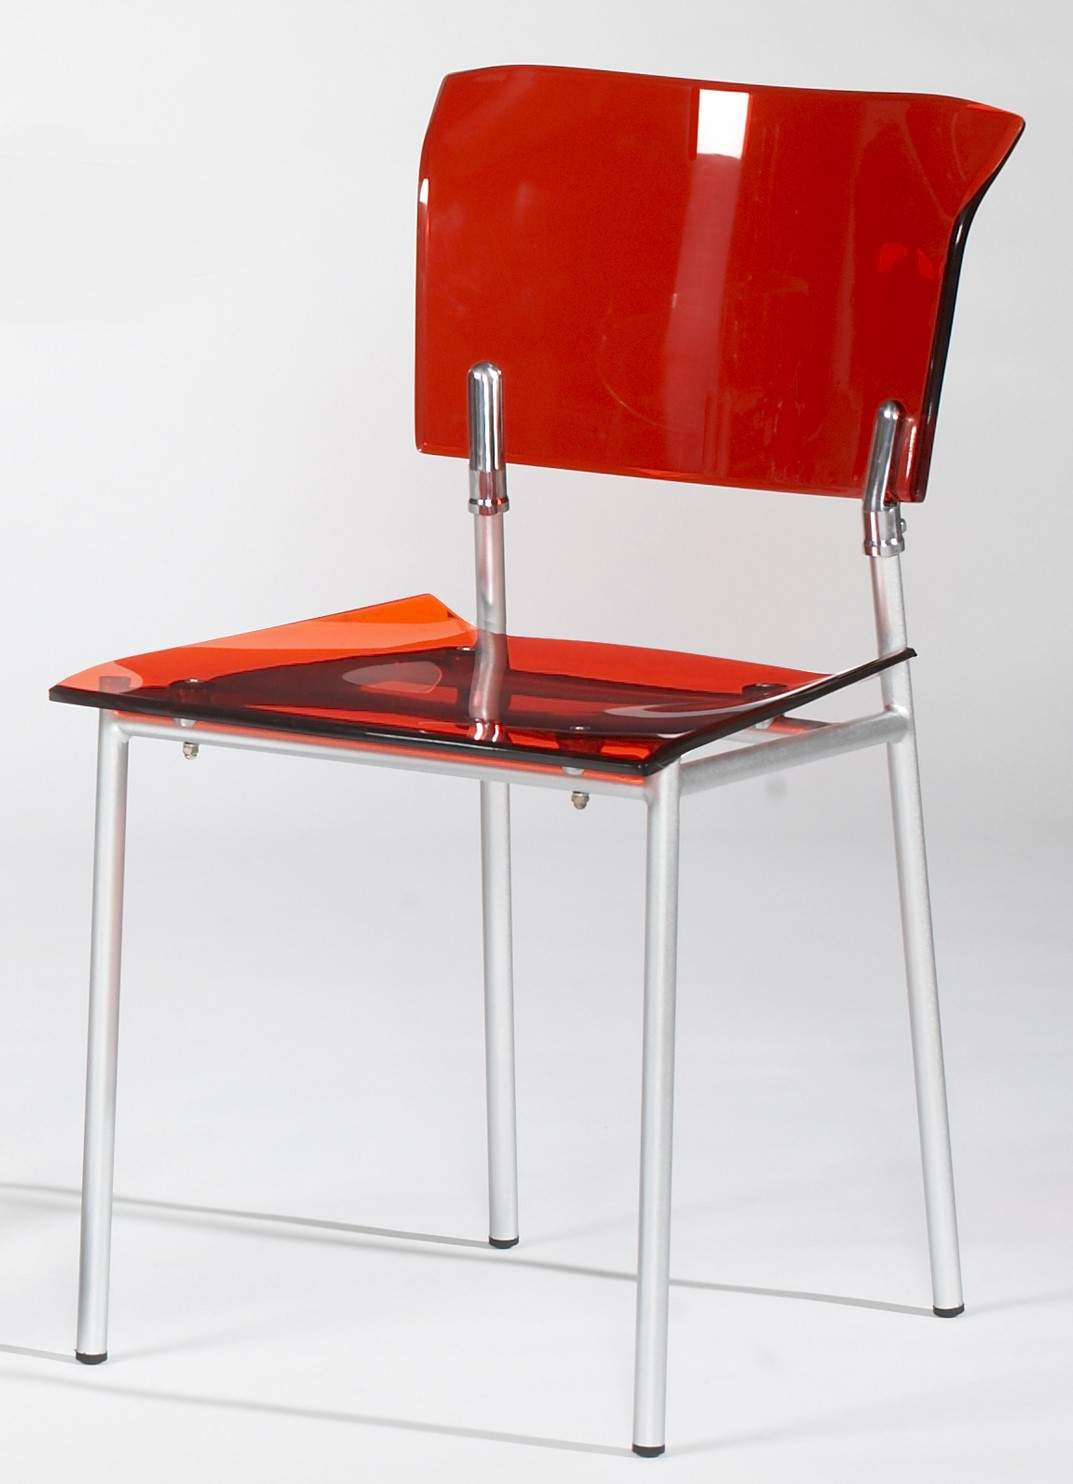 Acrylic Side Chair In Red With Metal Frame Stockton California CHACRYLIC